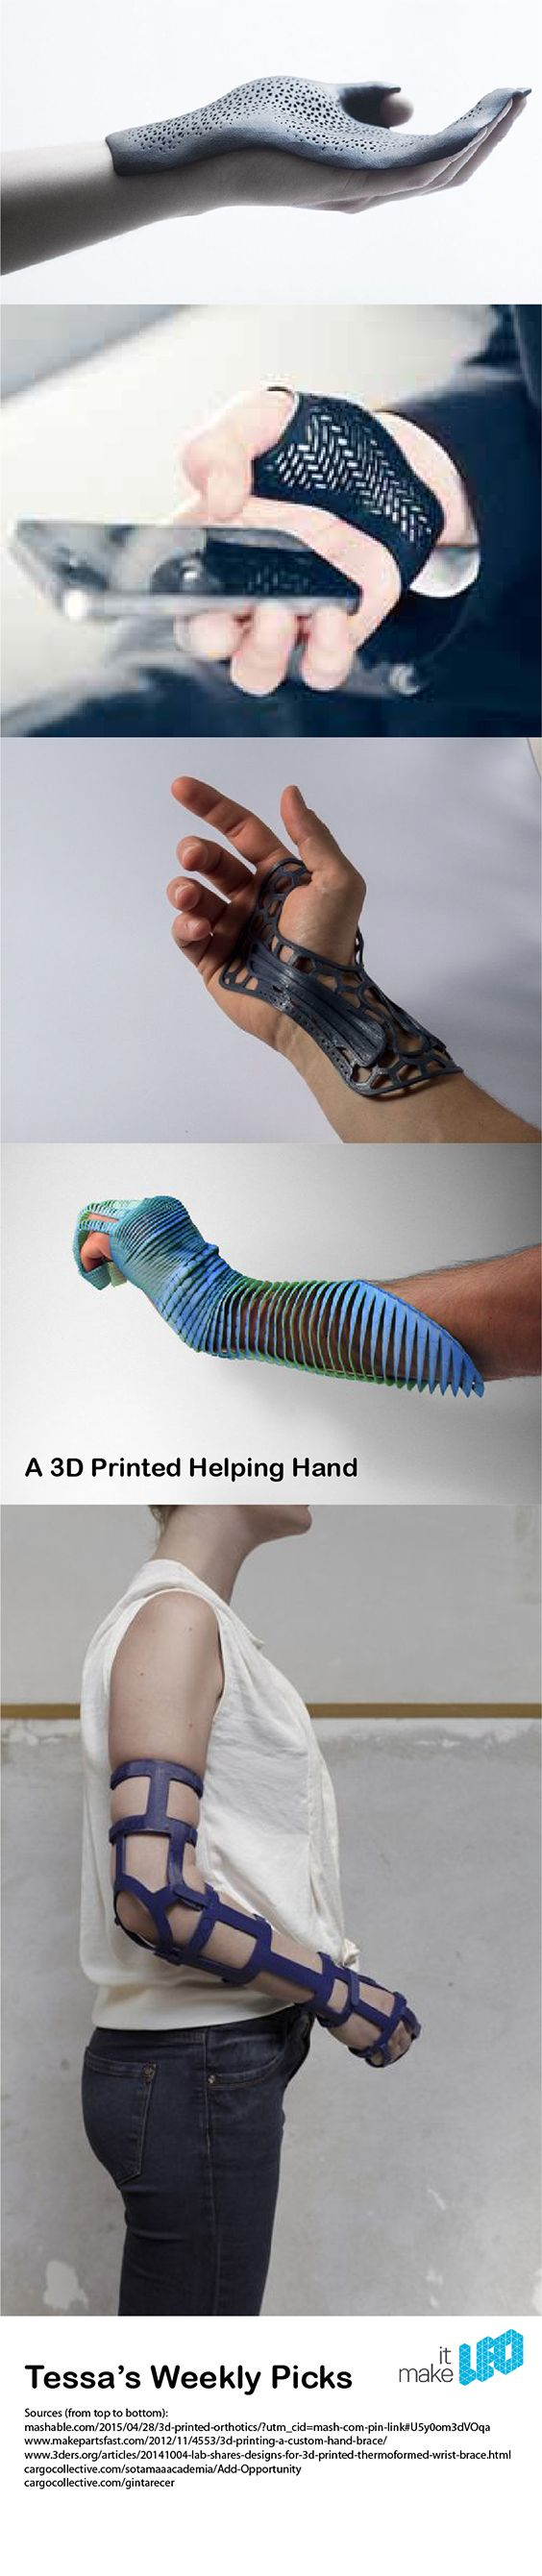 A 3D Printed Helping Hand - 5 Designs of 3D Printed Hand Braces - Tessa's Weekly…